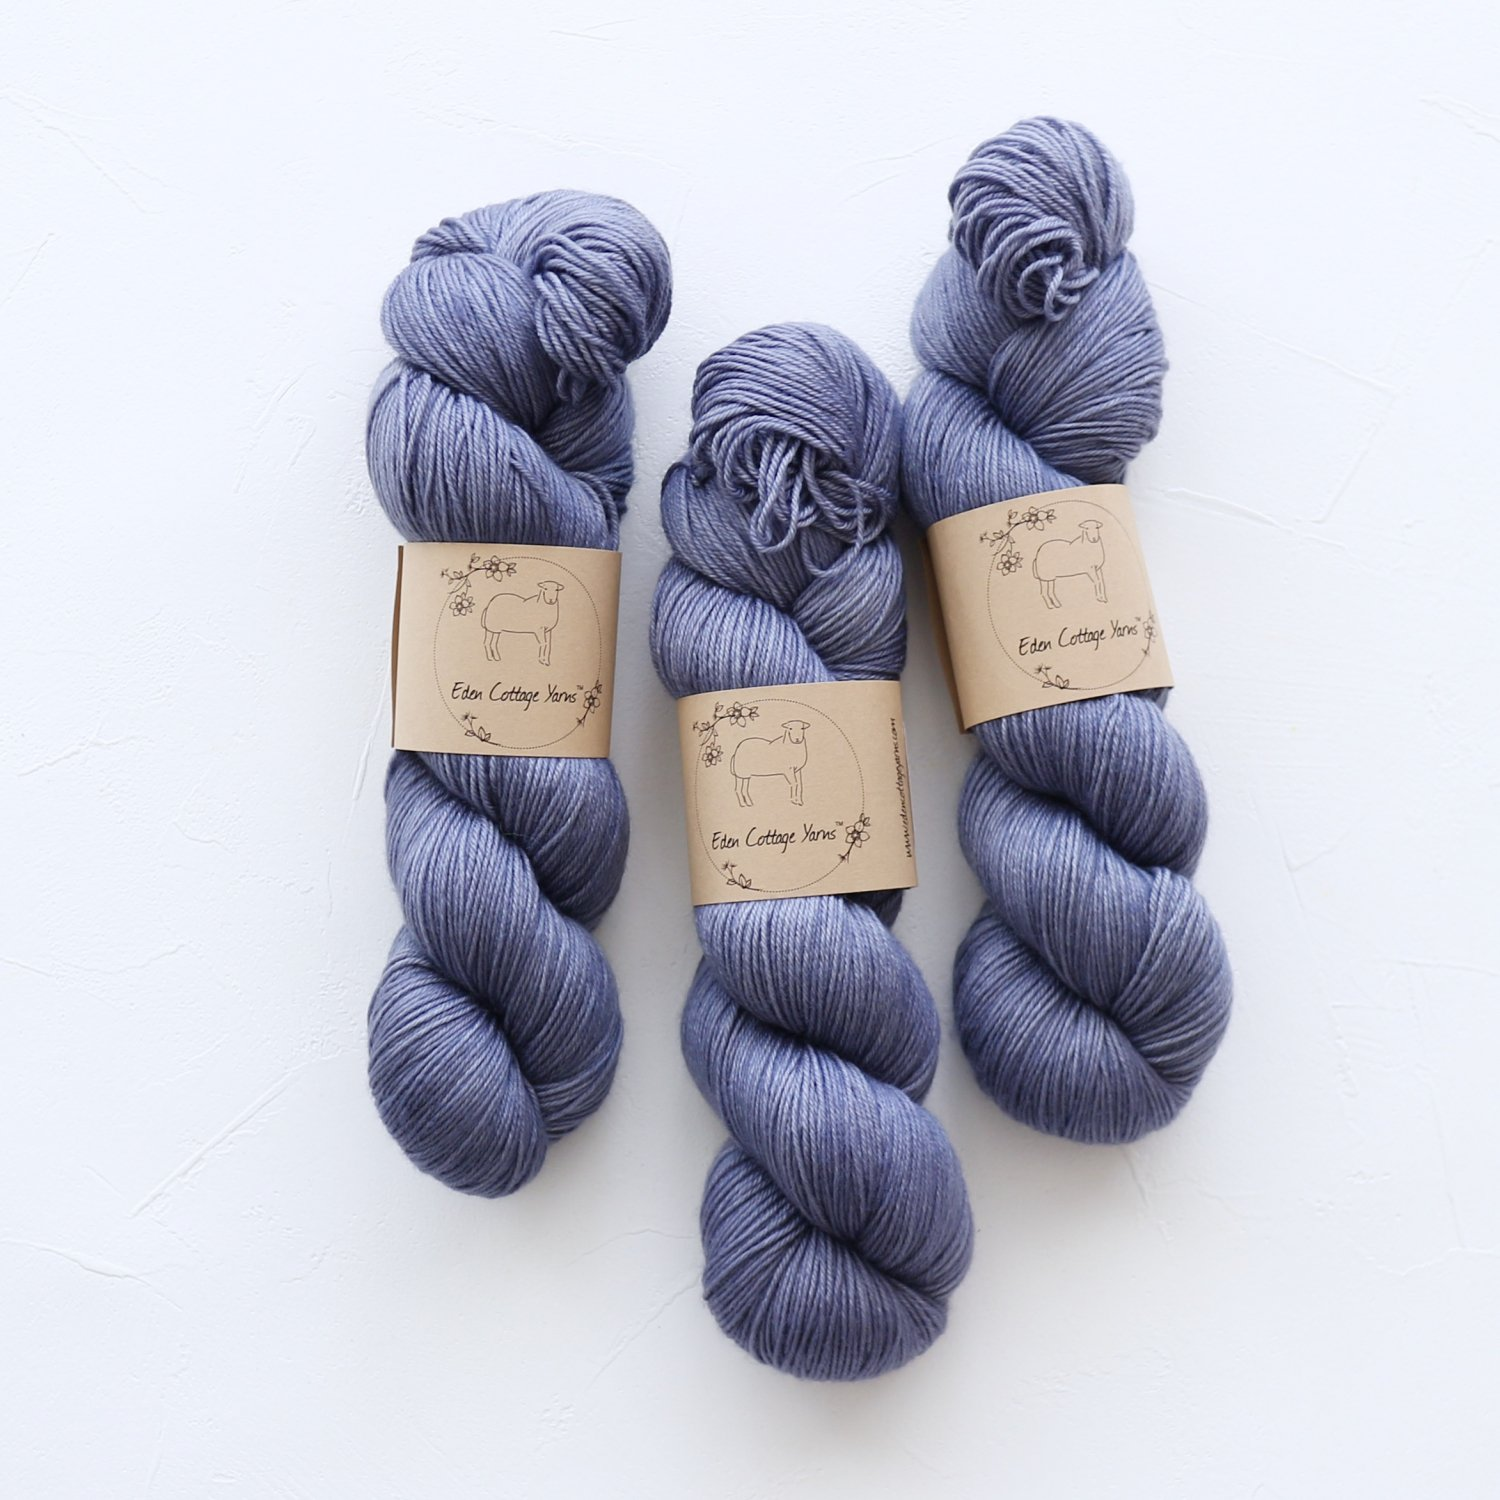 【Eden Cottage Yarns】<br>Pendle 4ply<br>Tarn